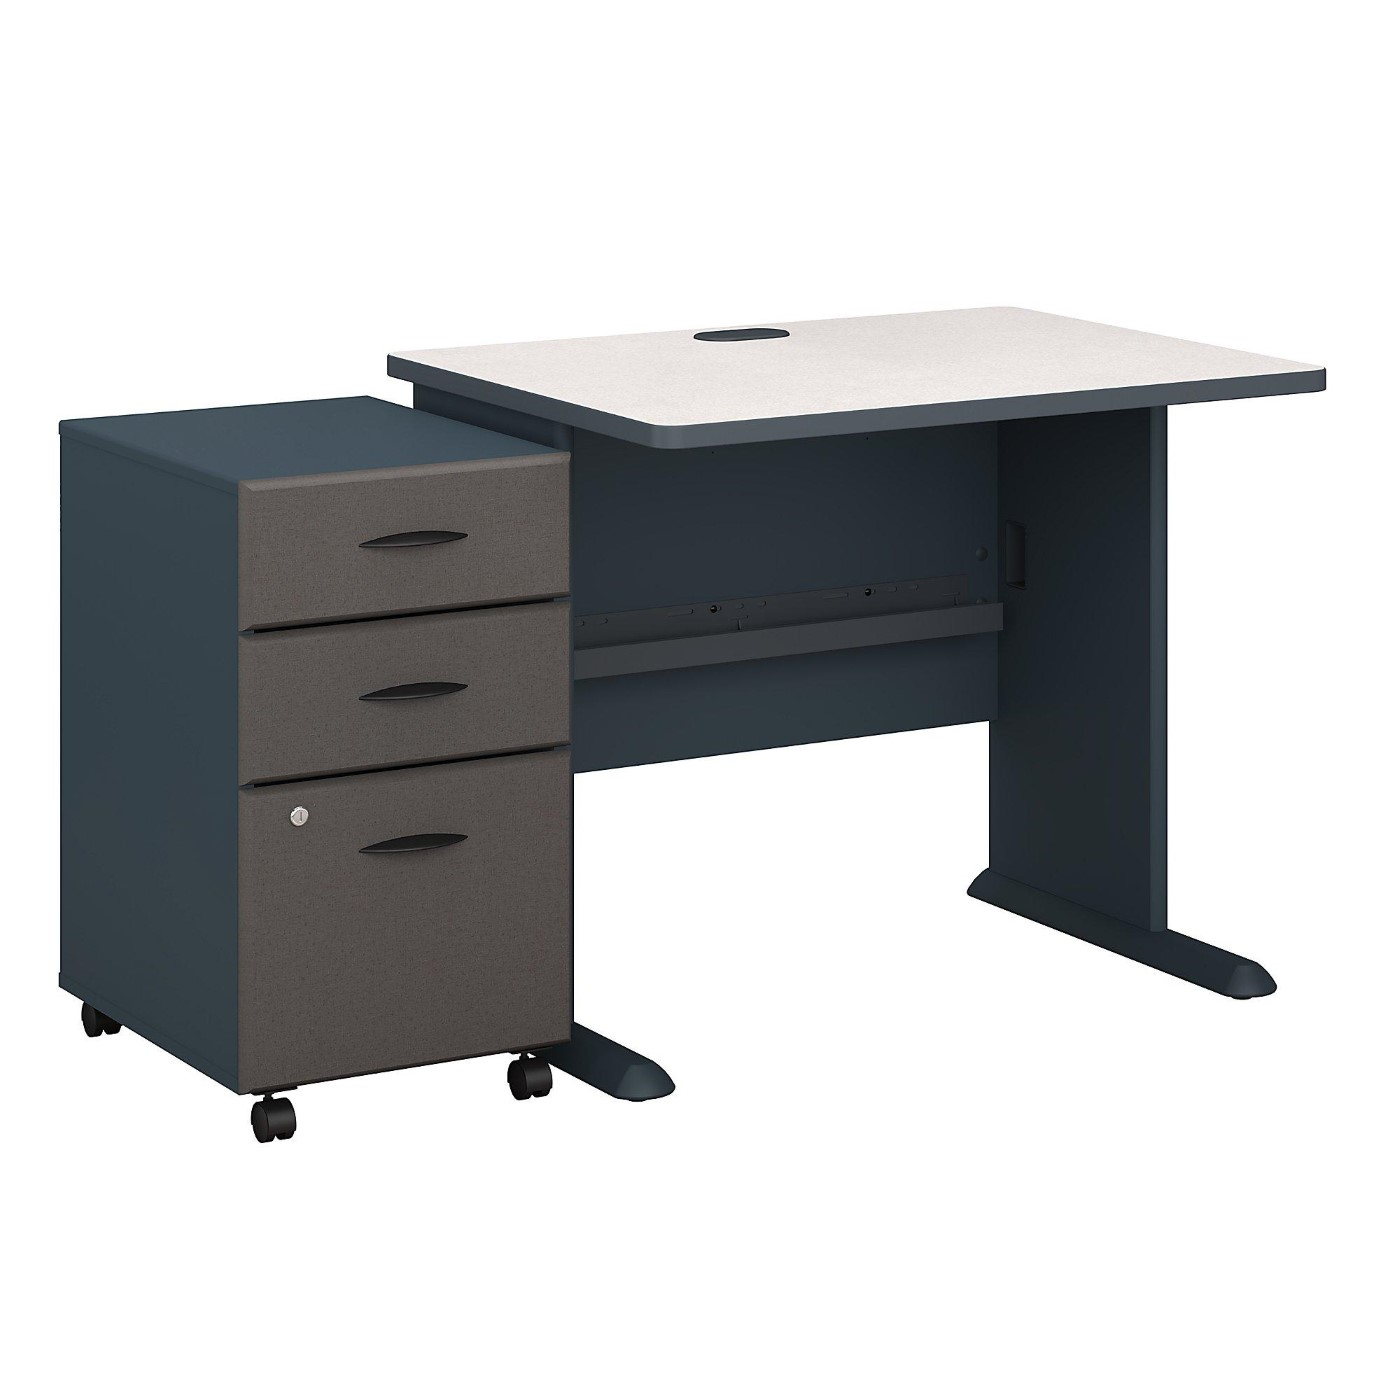 </b></font><b>BUSH BUSINESS FURNITURE SERIES A 36W DESK WITH MOBILE FILE CABINET. FREE SHIPPING</font>. </b></font></b>